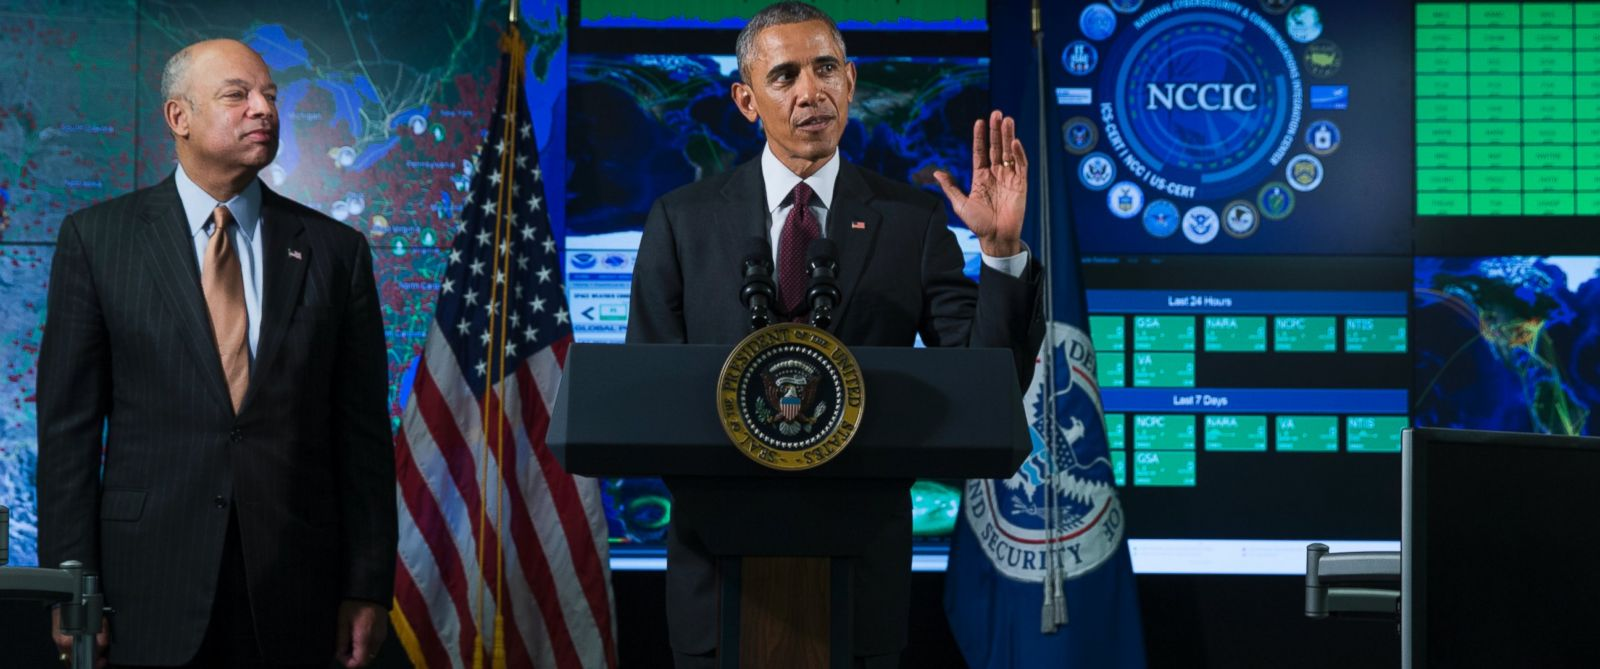 PHOTO: Homeland Security Secretary Jeh Johnson listens at left as President Barack Obama speaks at the National Cybersecurity and Communications Integration Center in Arlington, Va., Jan. 13, 2015. Ob